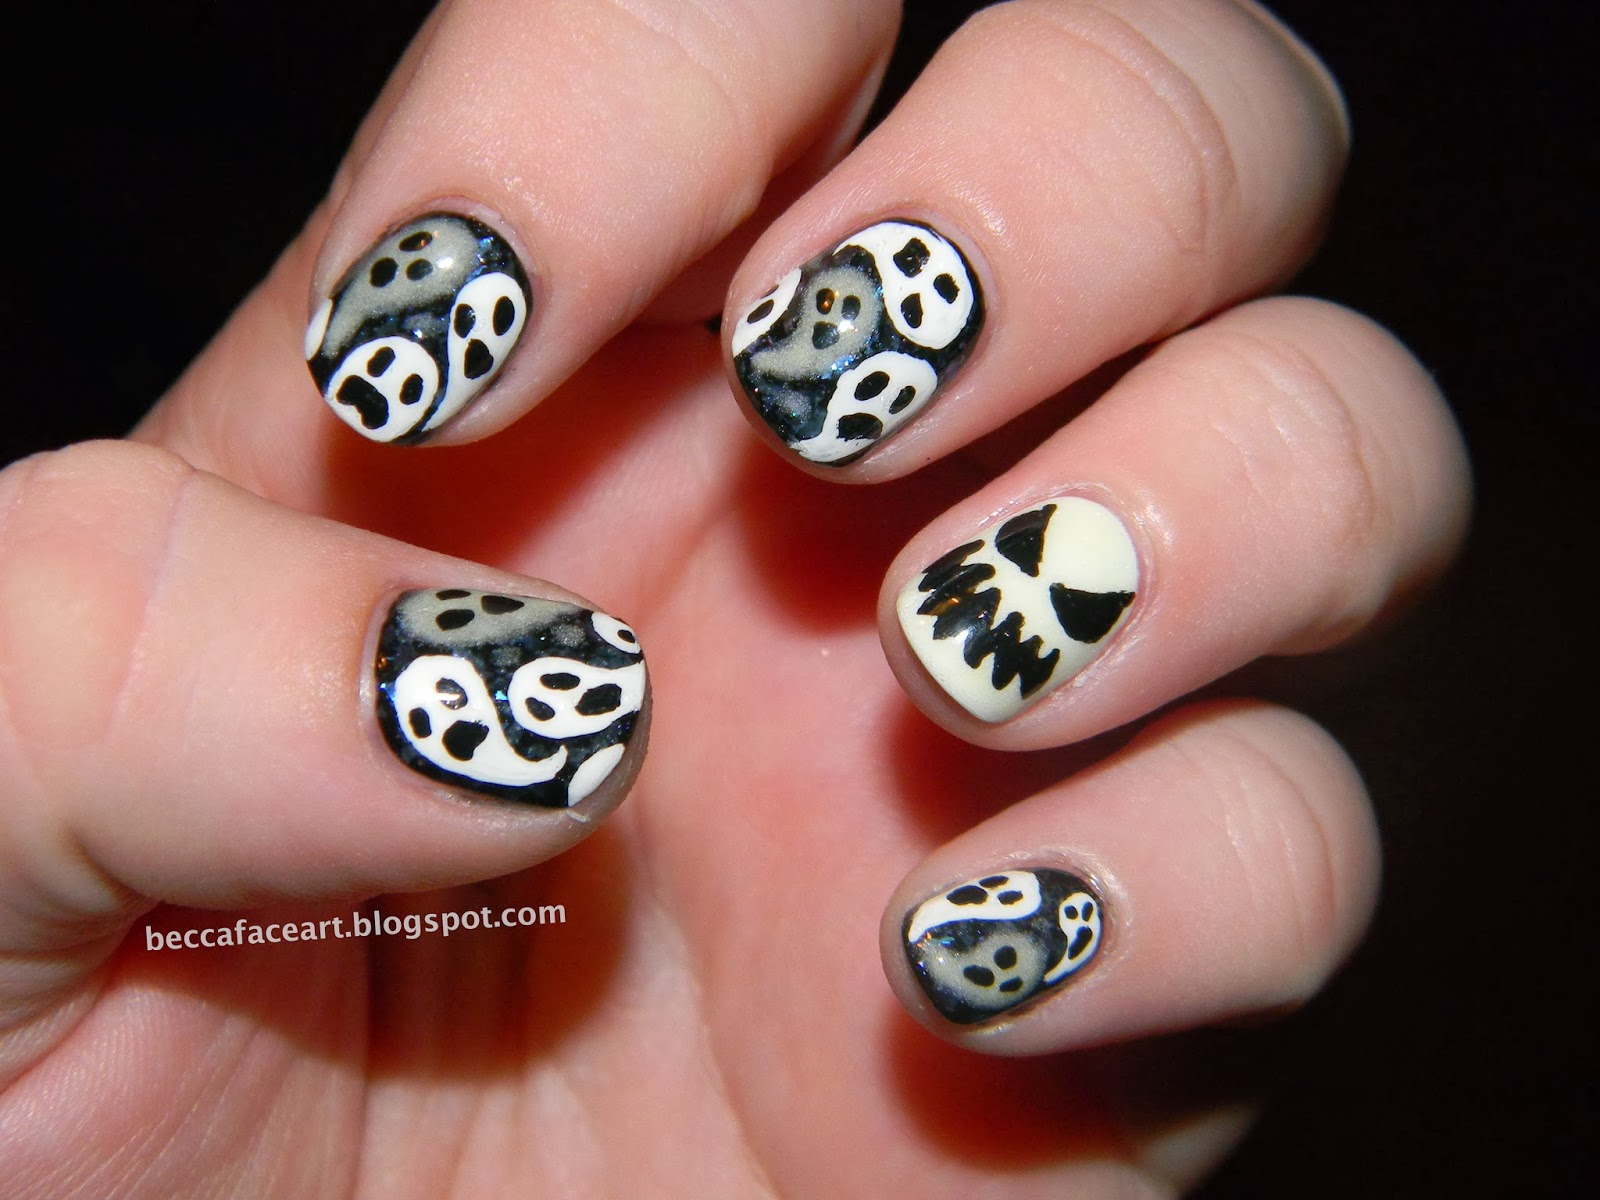 Becca Face Nail Art: Halloween Ghostie Nails!